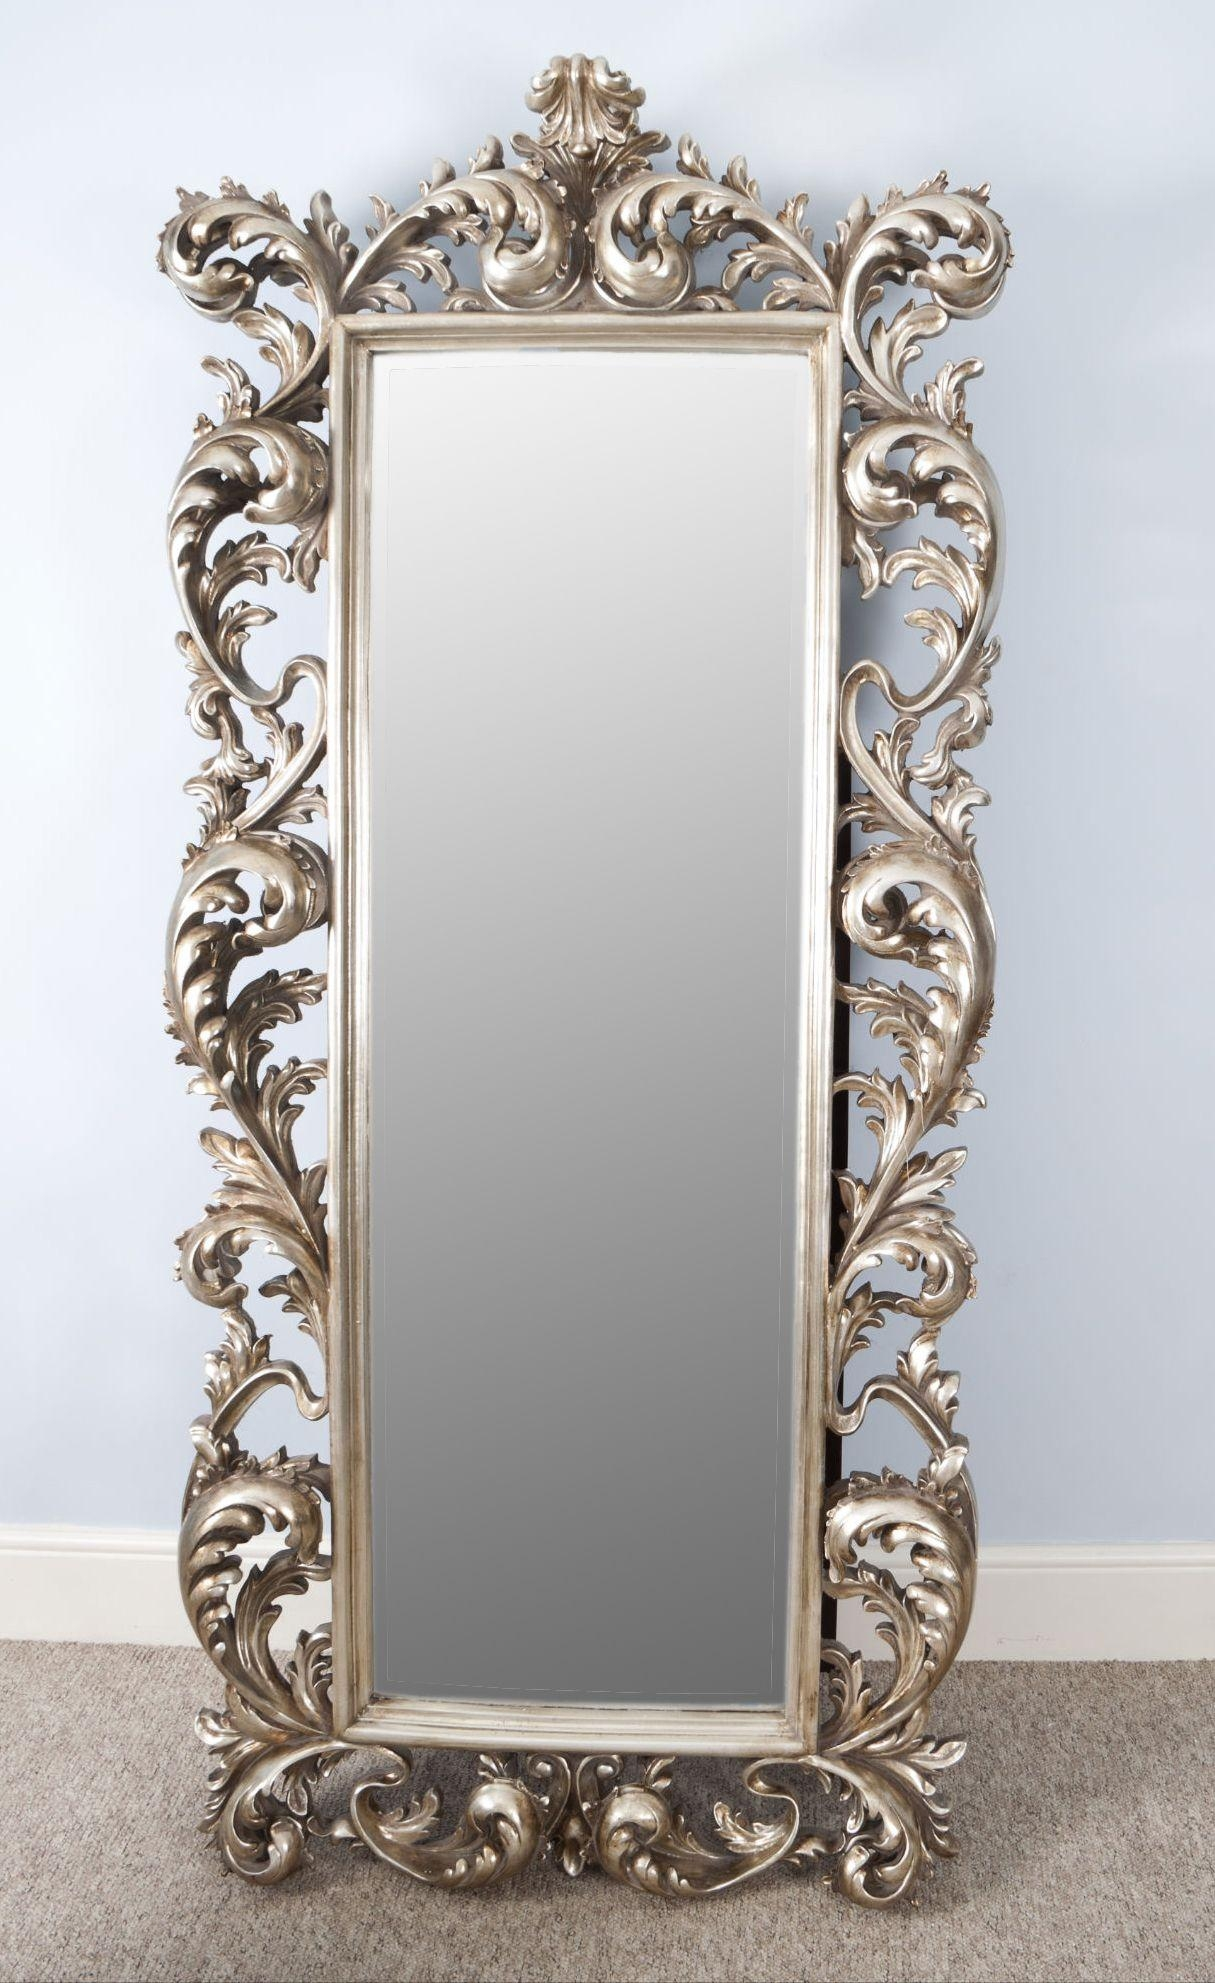 Large Silver Wall Mirror 76 Inspiring Style For Mirrors Pleasing With Regard To Big Silver Mirror (Image 14 of 20)